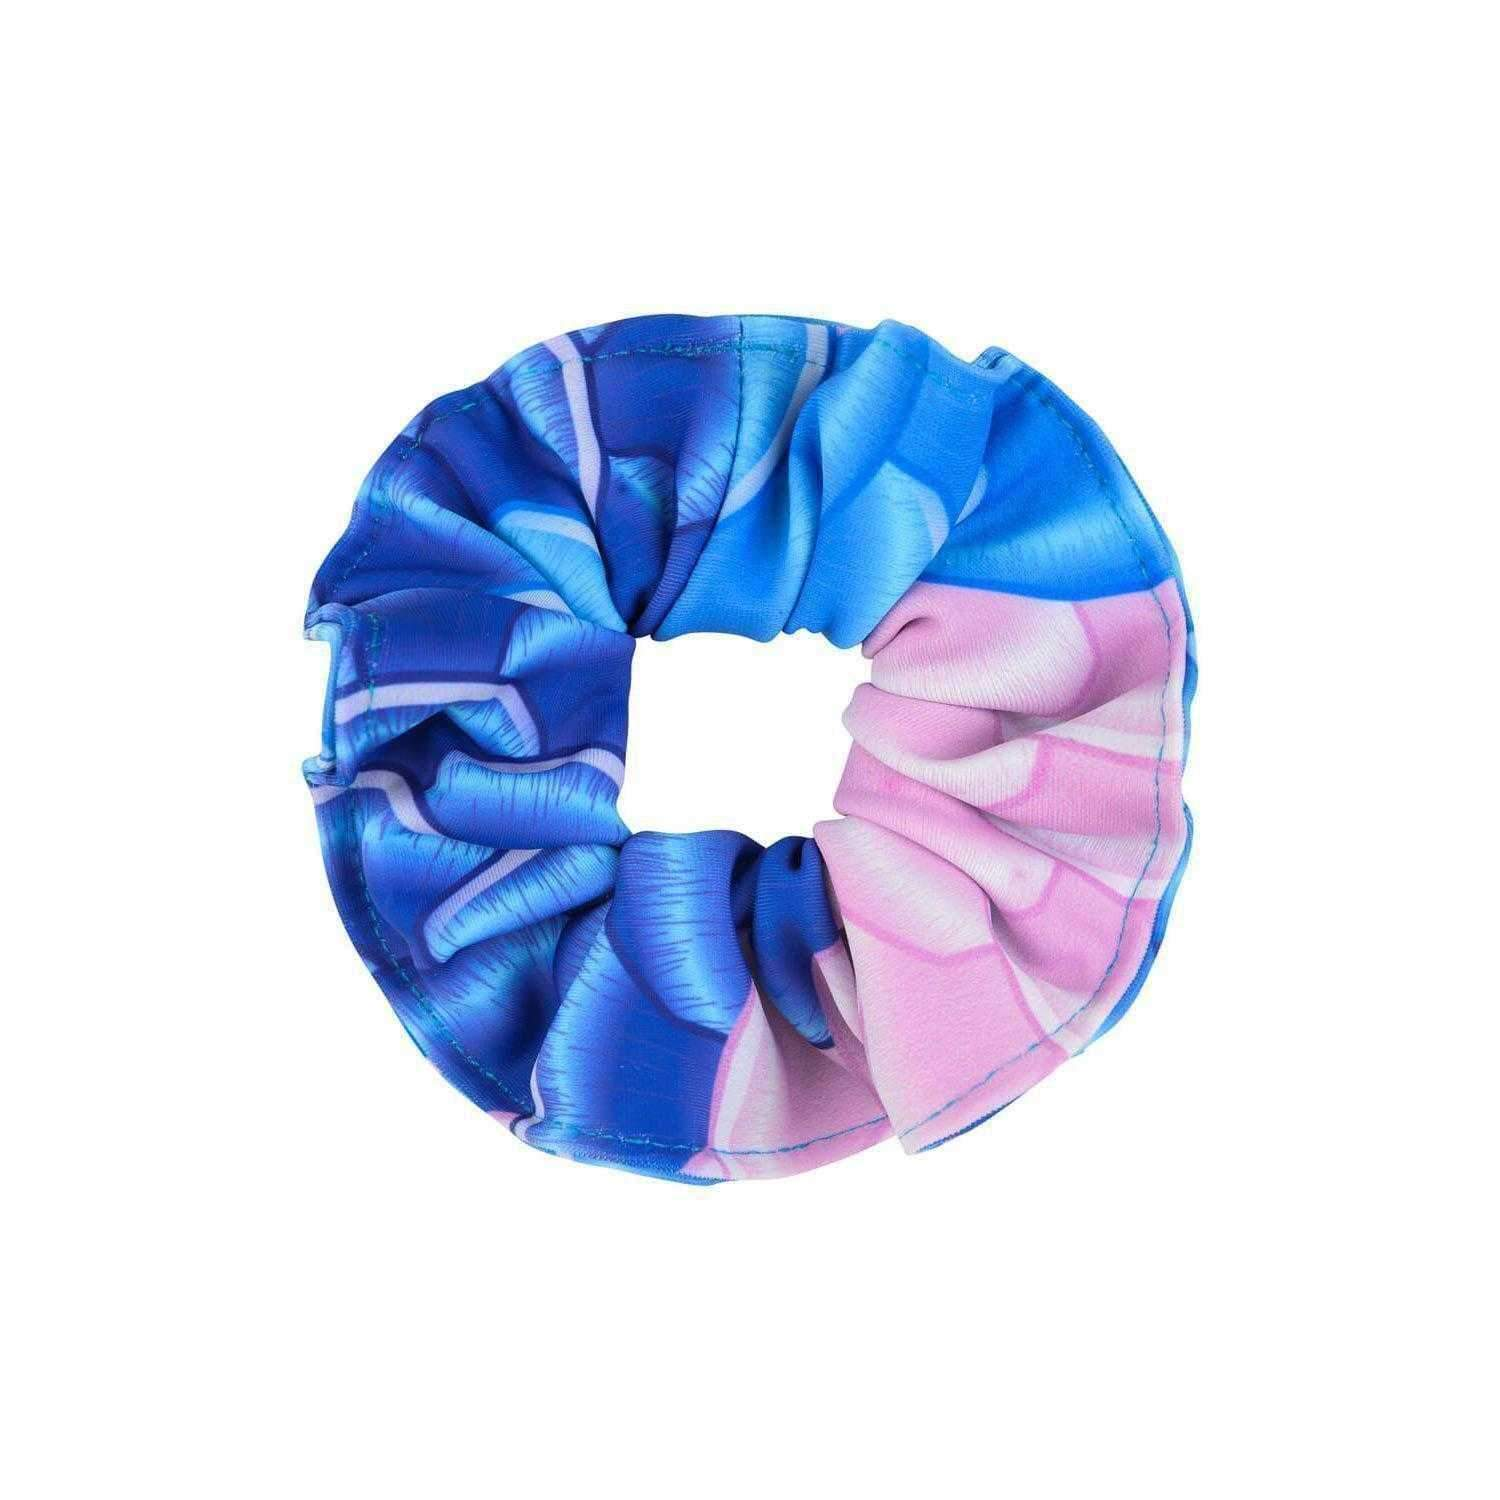 Mayfair Poppy Hair Scrunchie - Mermaids Tail UK